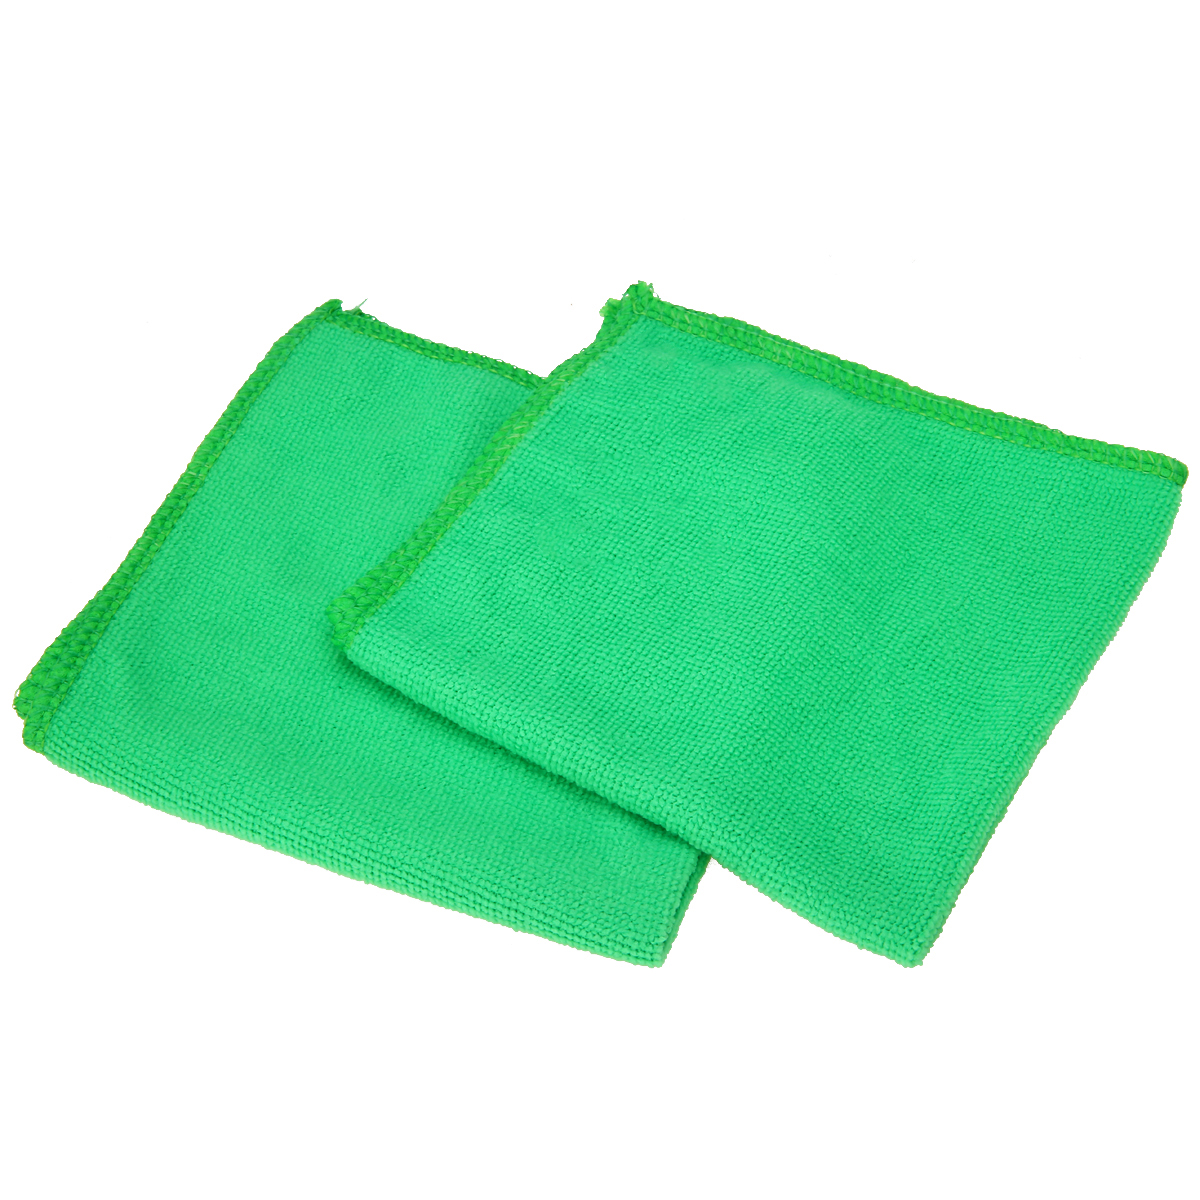 Image 5 - 10pcs/set 25 x 25cm Microfiber Car Wash Towel Soft Cleaning Auto Car Care Detailing Cloths Wash Towel-in Sponges, Cloths & Brushes from Automobiles & Motorcycles